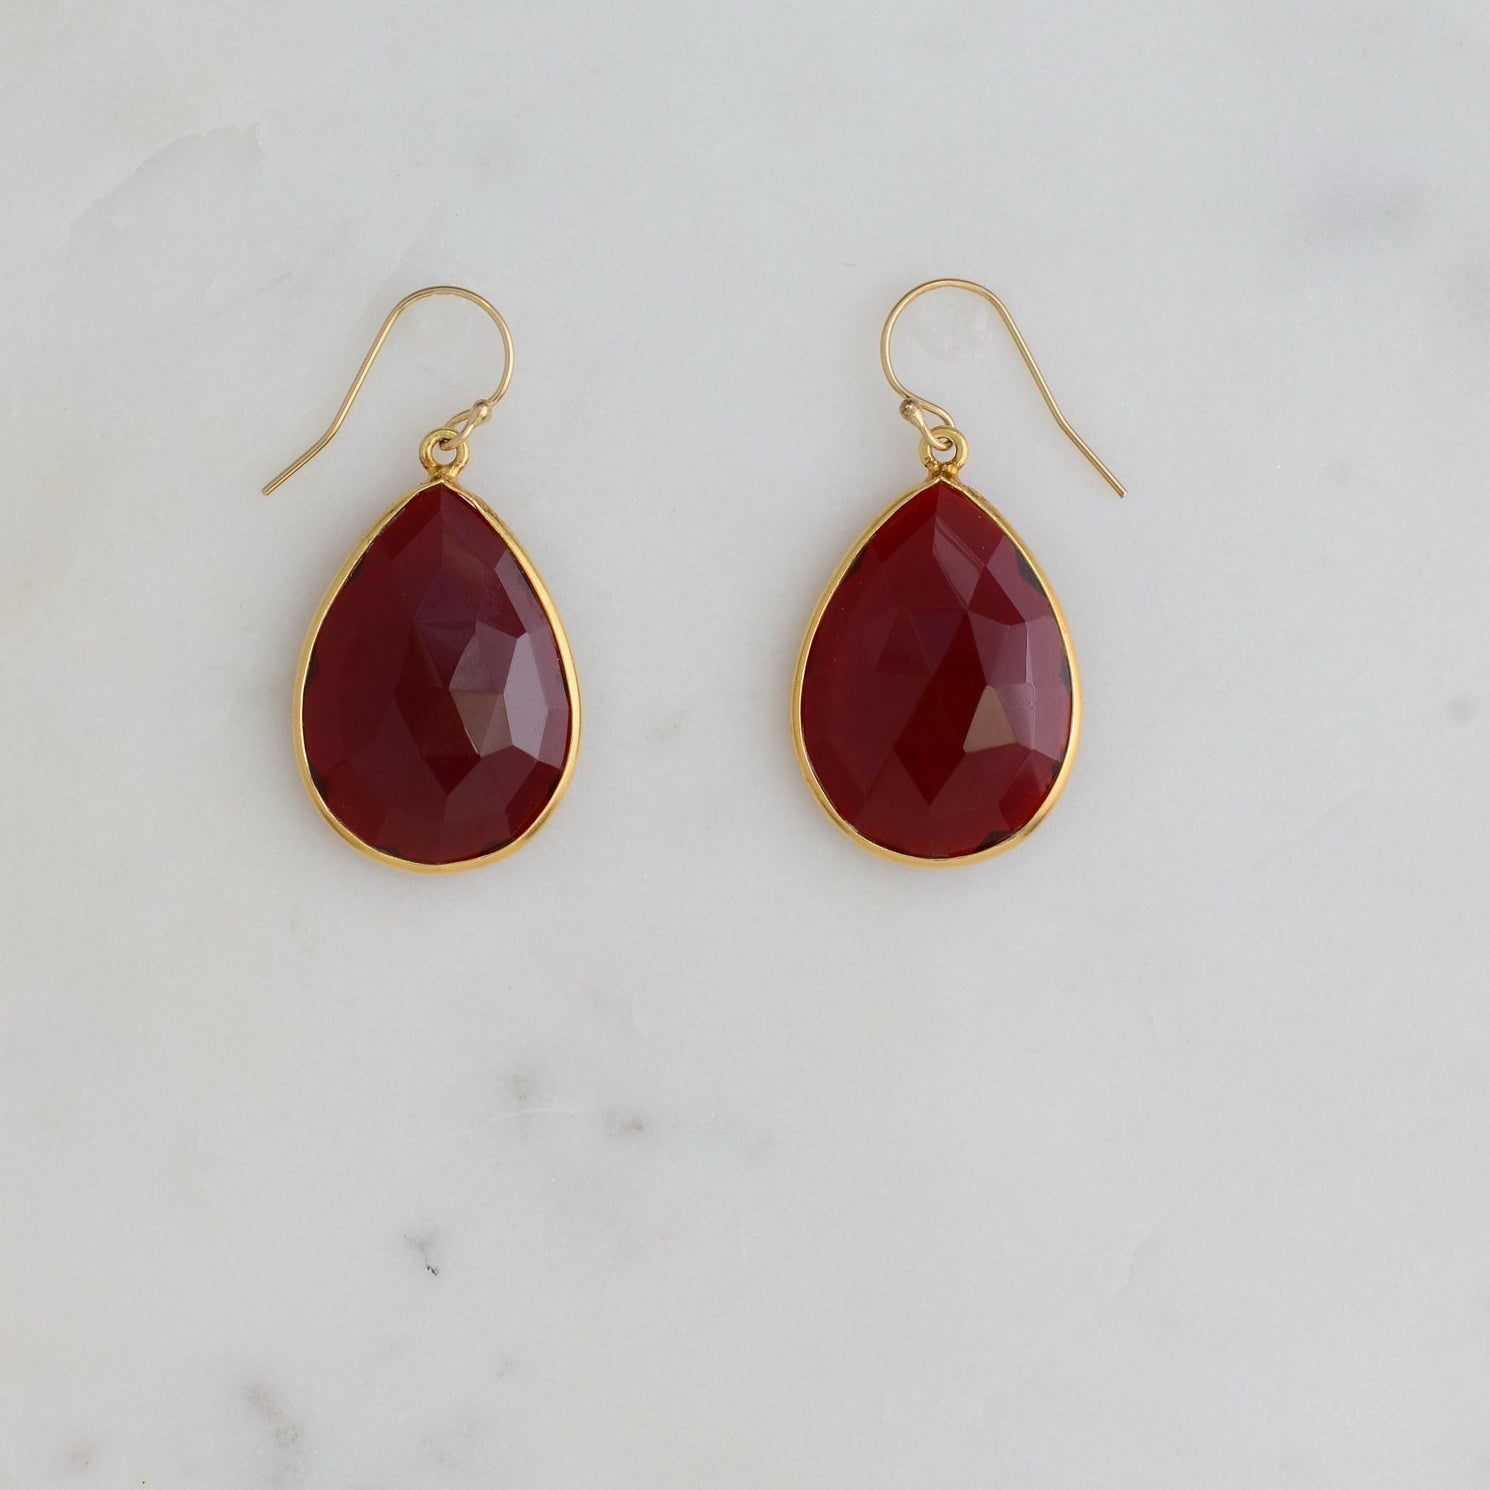 Garnet Bezel Earring, January Birthstone earring, Simple Earring, Valentine's Gift for her, Bezel set earring, Maroon Gemstone Earring